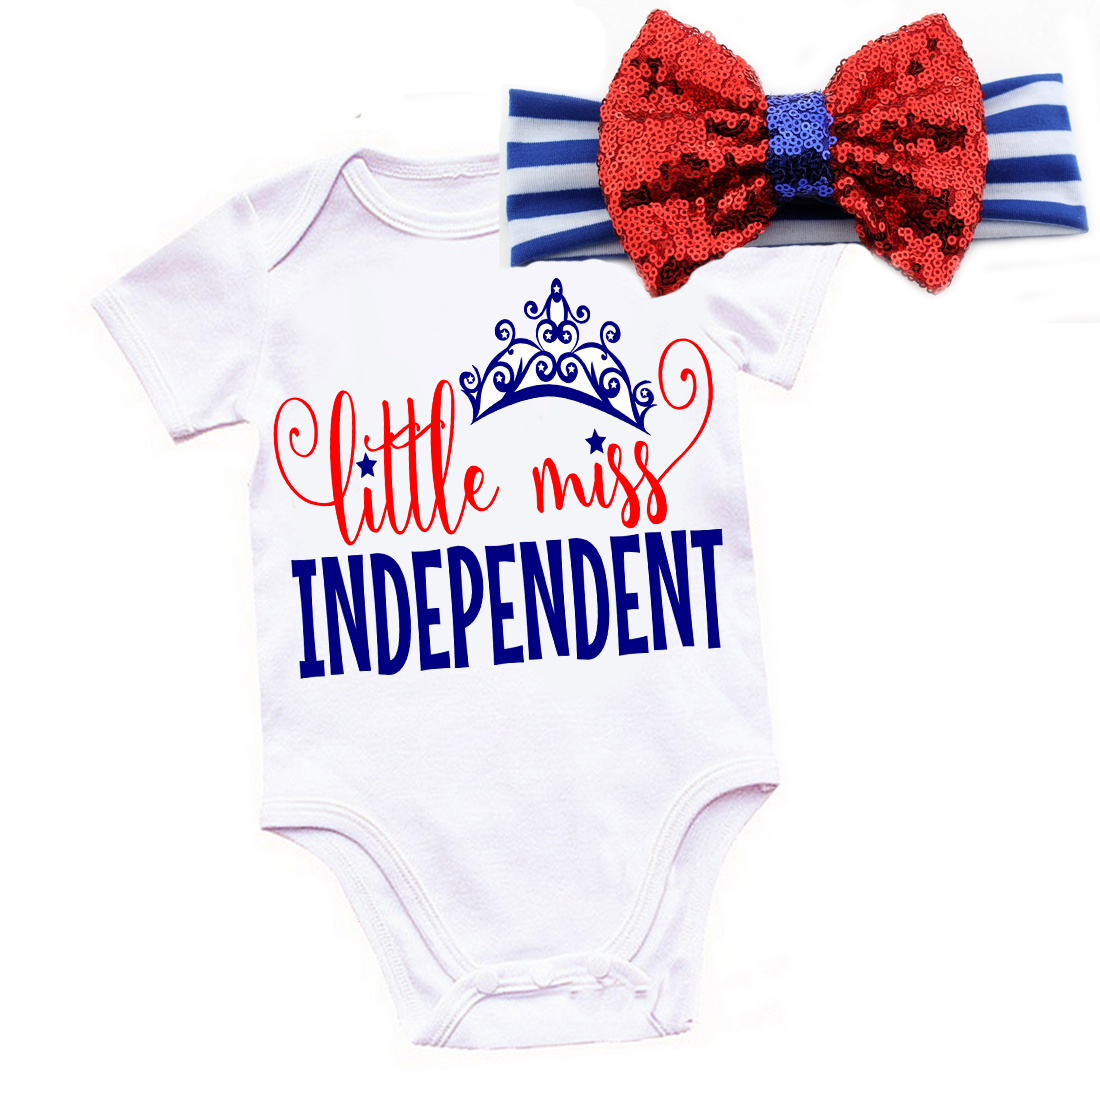 c24eae85d0c1 onefun-23 Little Miss Independent 4th of July Shirt or Outfit For Girls